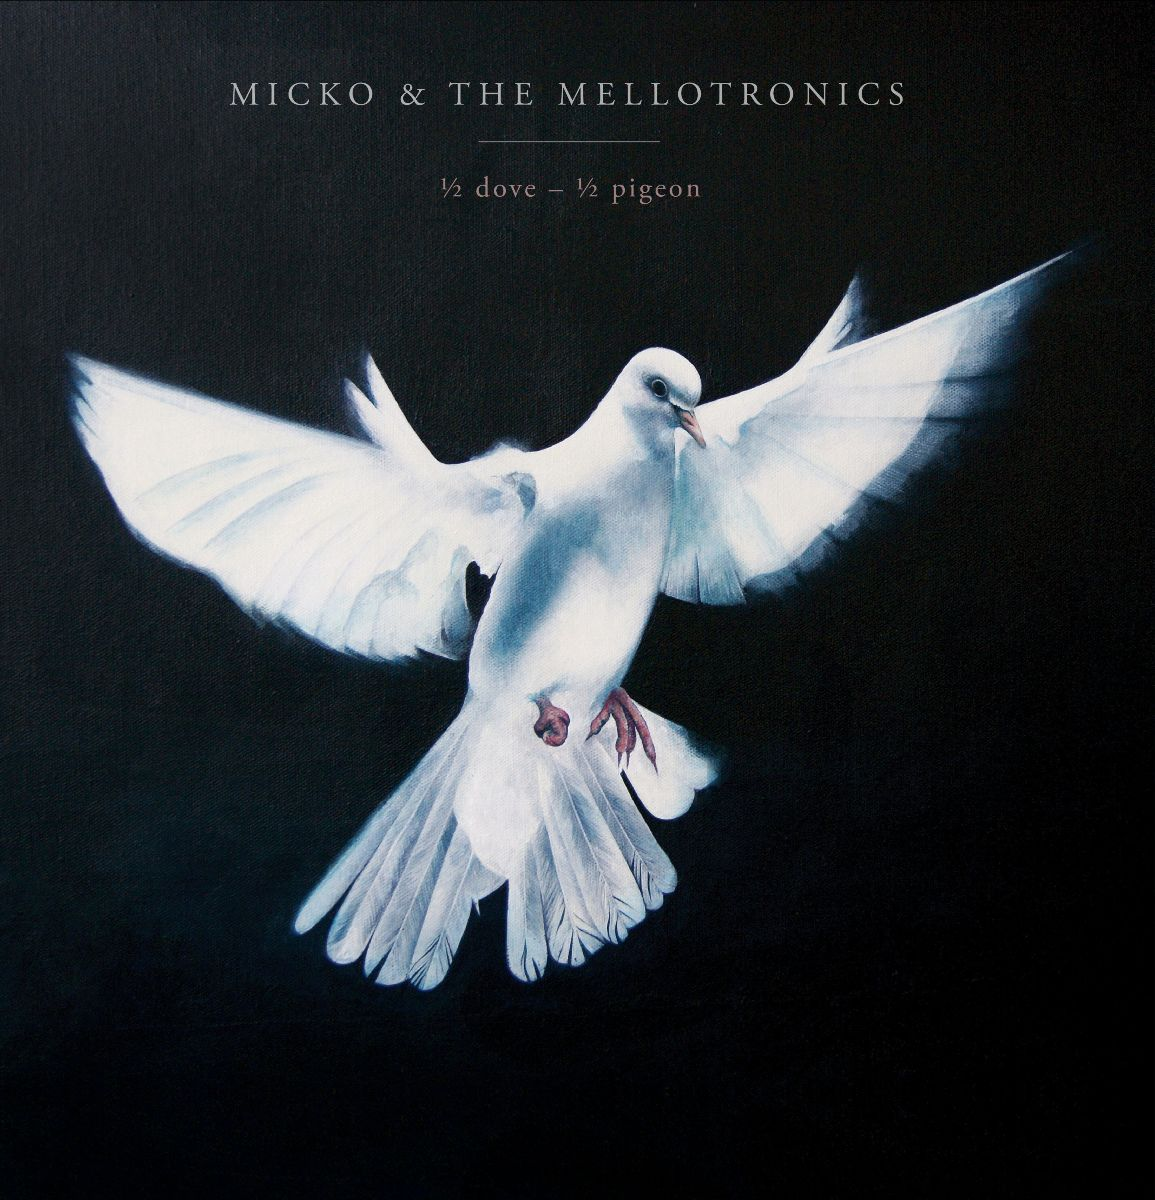 1/2 Dove – 1/2 Pigeon with Micko and theMellotronics